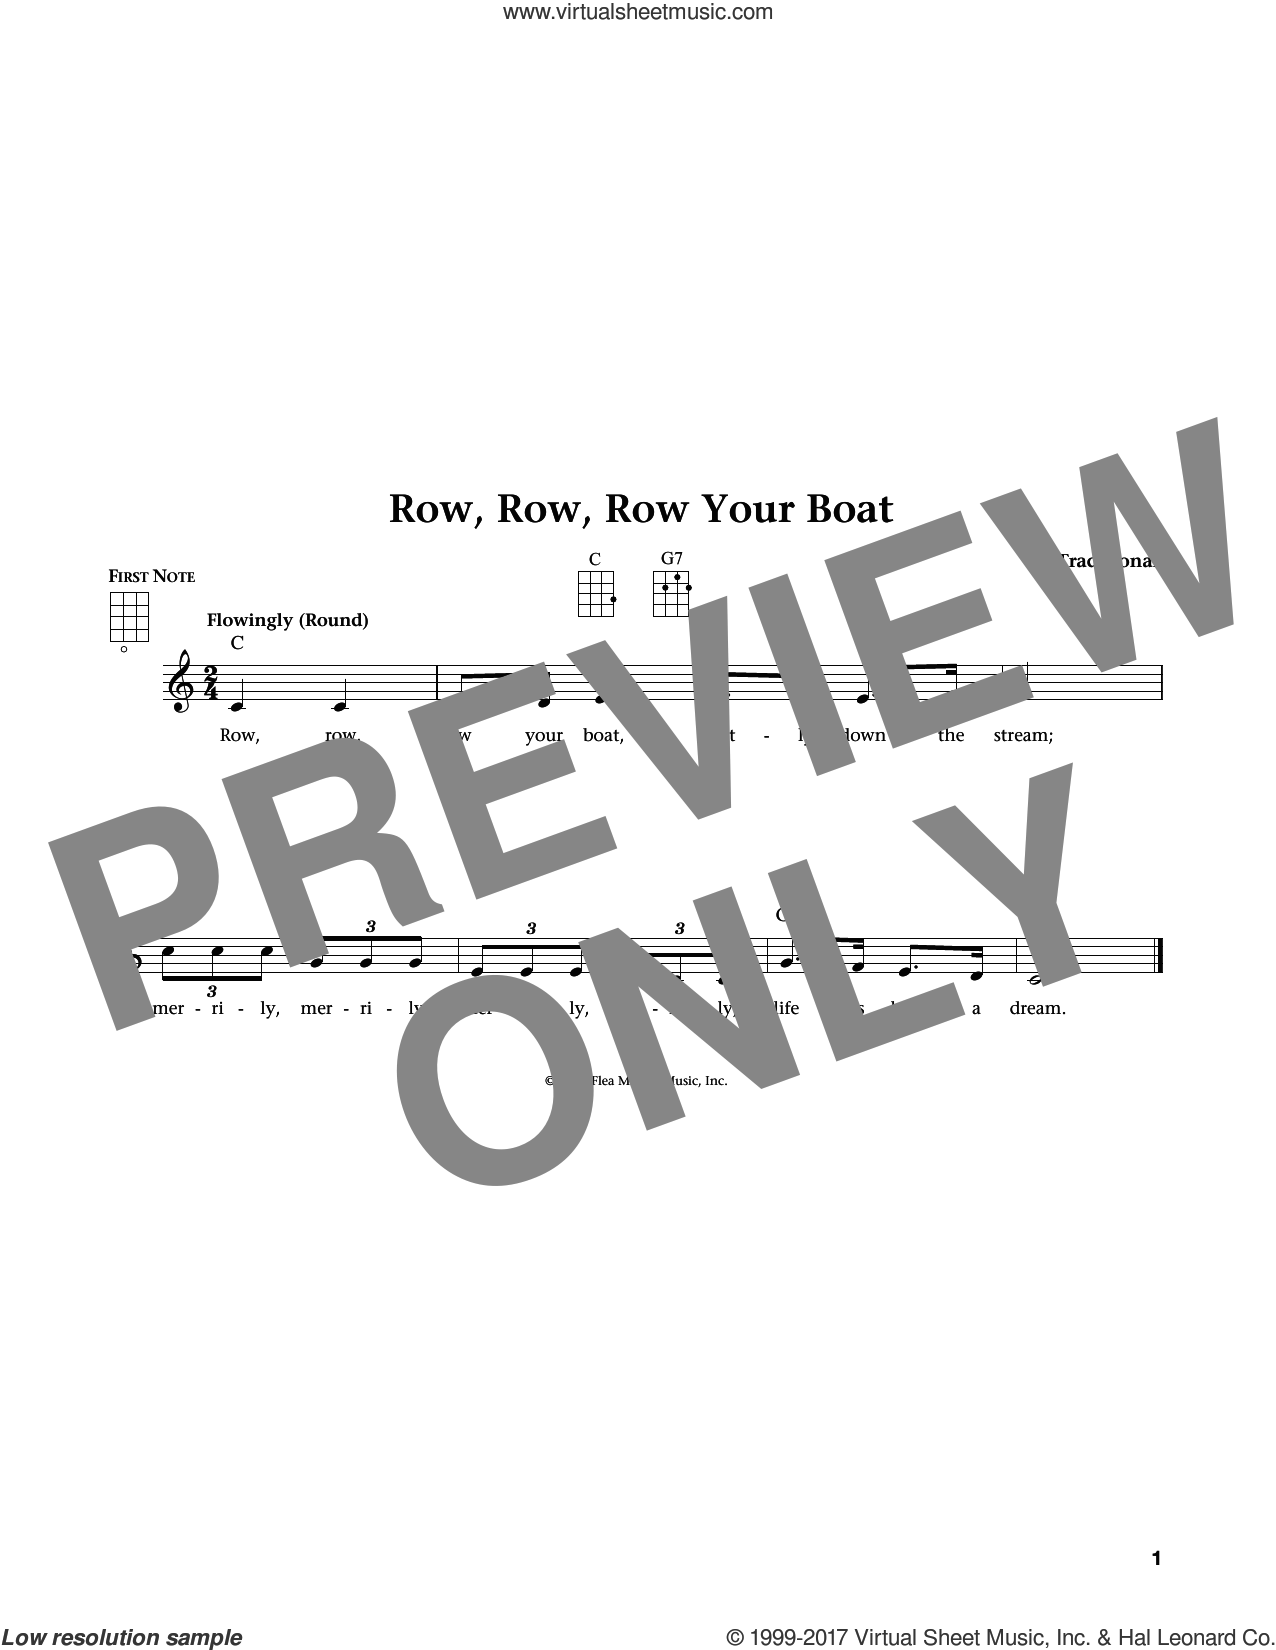 Row, Row, Row Your Boat (from The Daily Ukulele) (arr. Liz and Jim Beloff) sheet music for ukulele , Jim Beloff and Liz Beloff, intermediate skill level